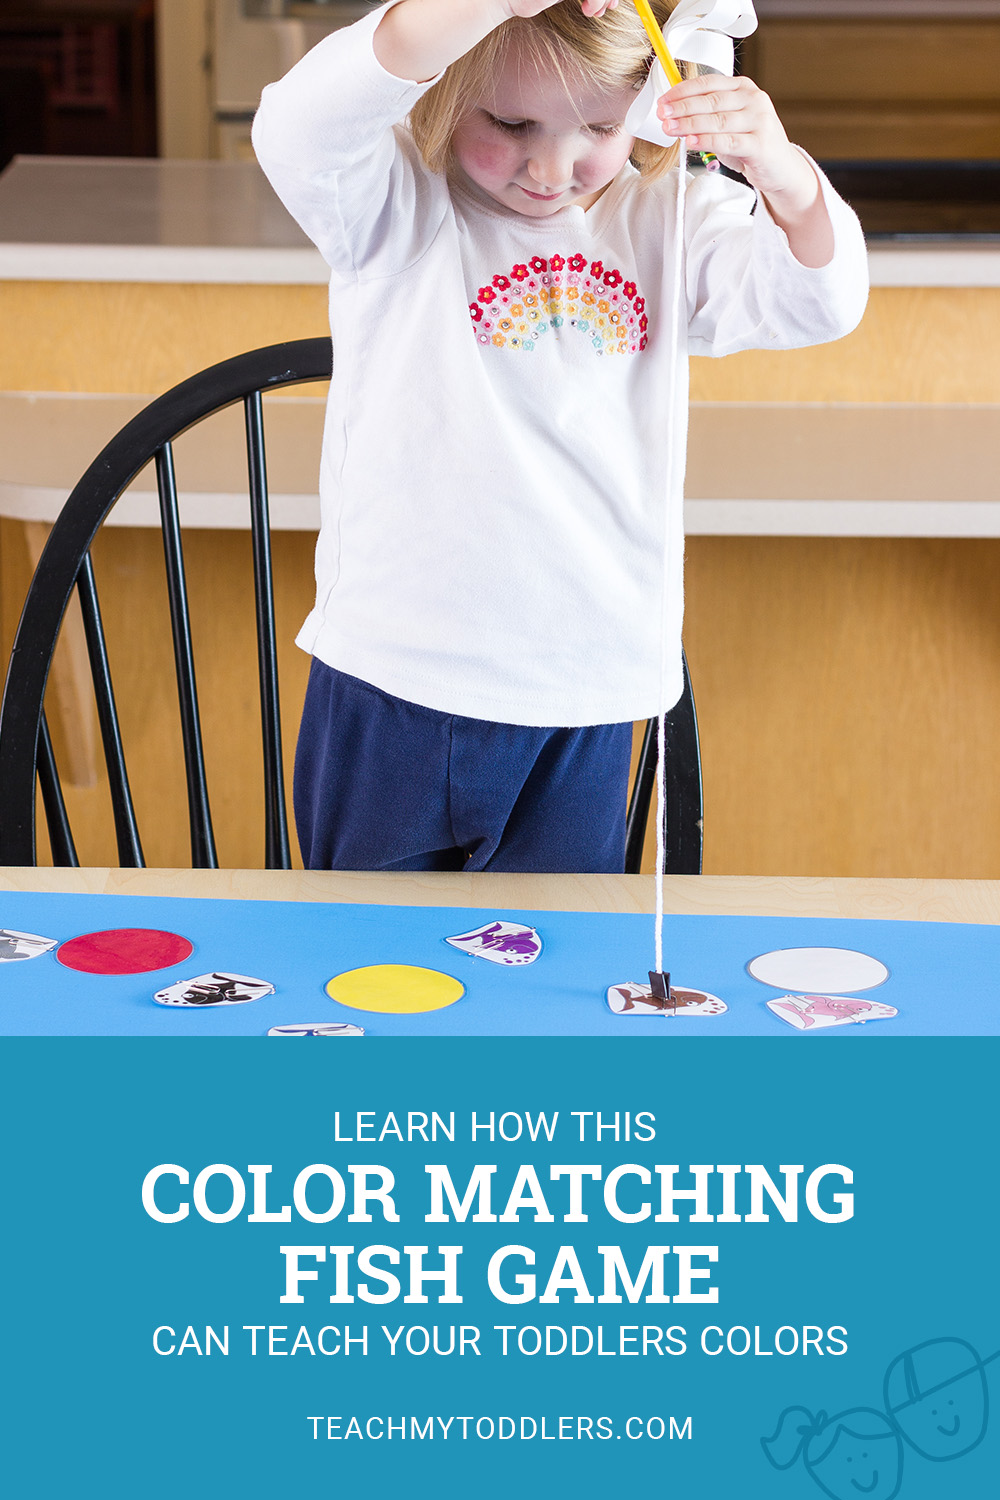 Learn how this color matching fish game can teach your toddlers colors